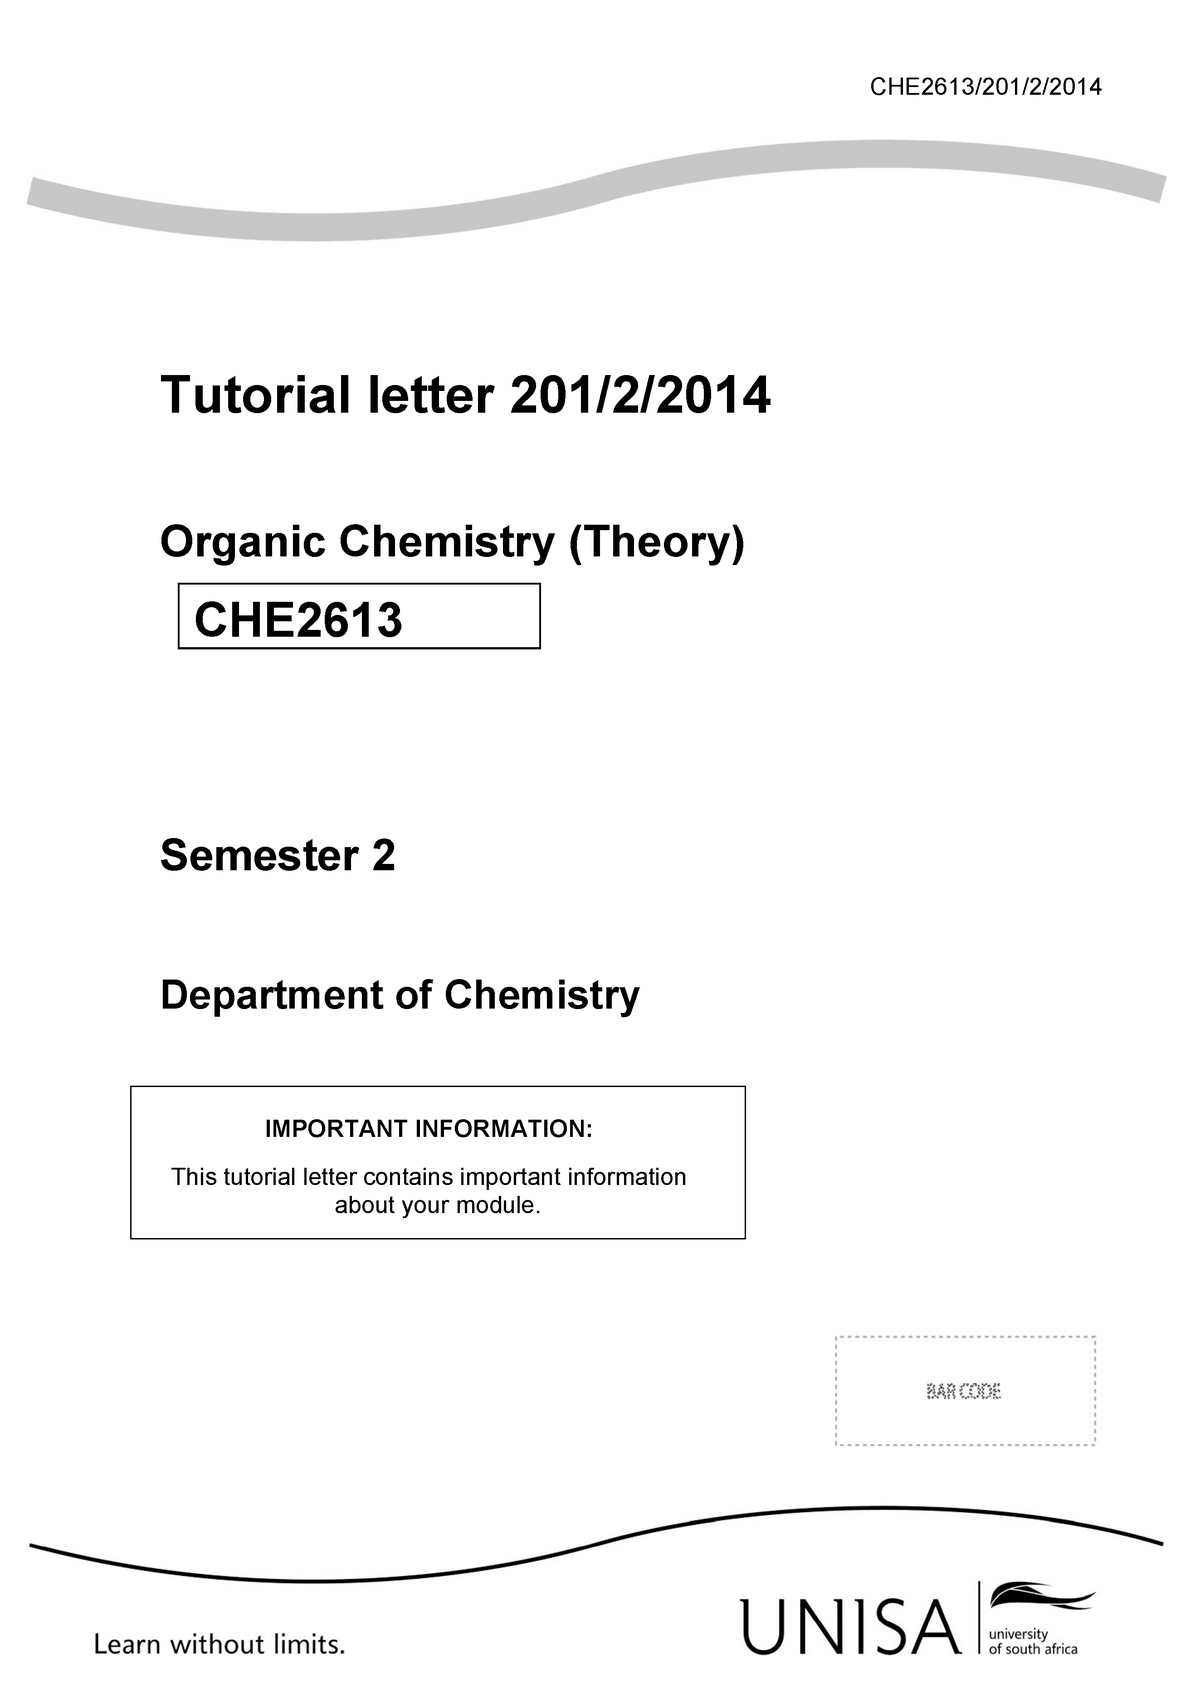 201 2014 S2 solutions to ass1 - CHE2613: Organic Chemistry